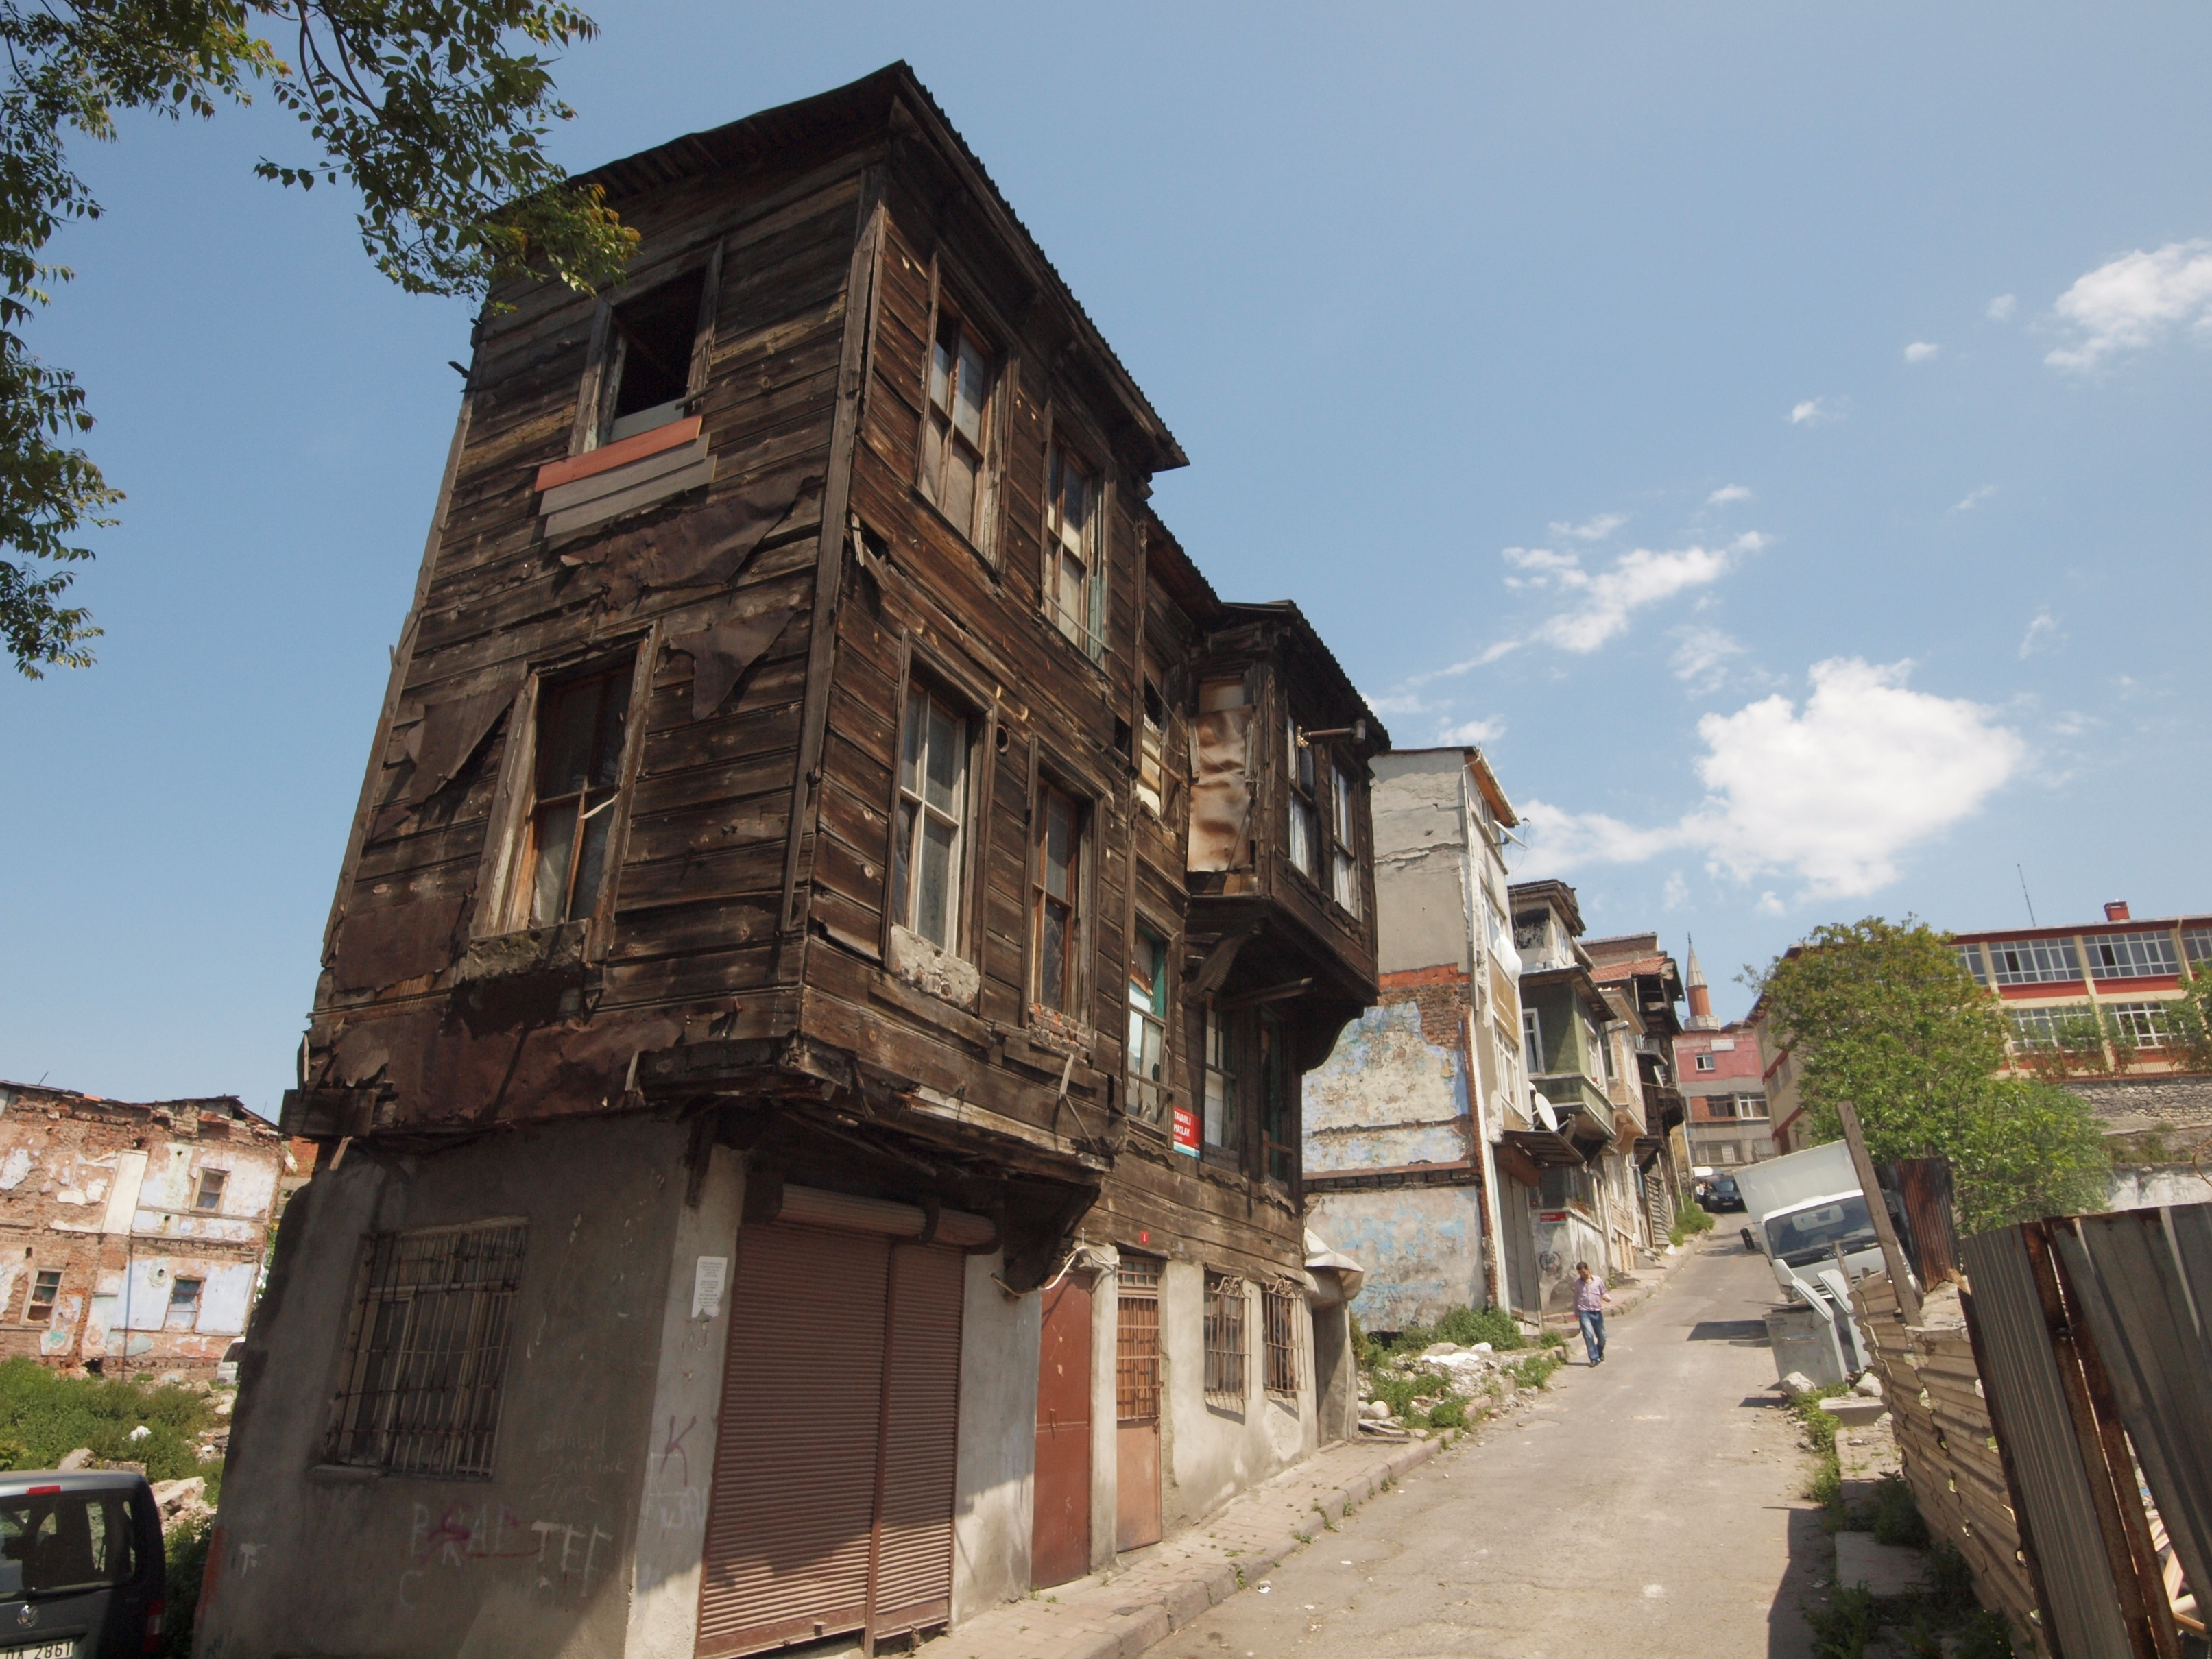 Old wooden Ottoman houses